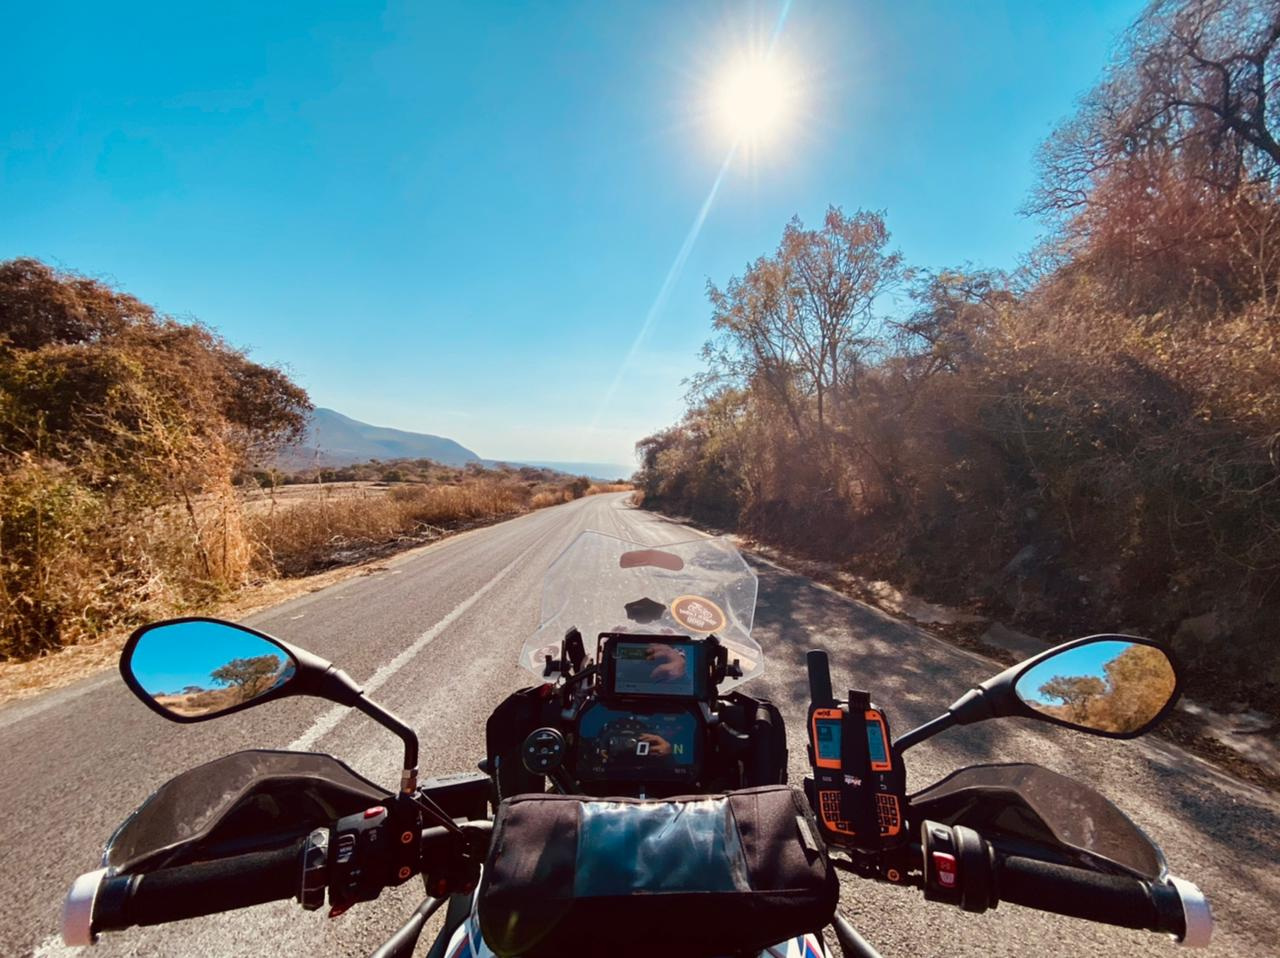 Thank you @ Dubanok for sharing your memorable experiences with DOOGEE phone, DOOGEE hopes everyone can enjoy your motorcycle rides.